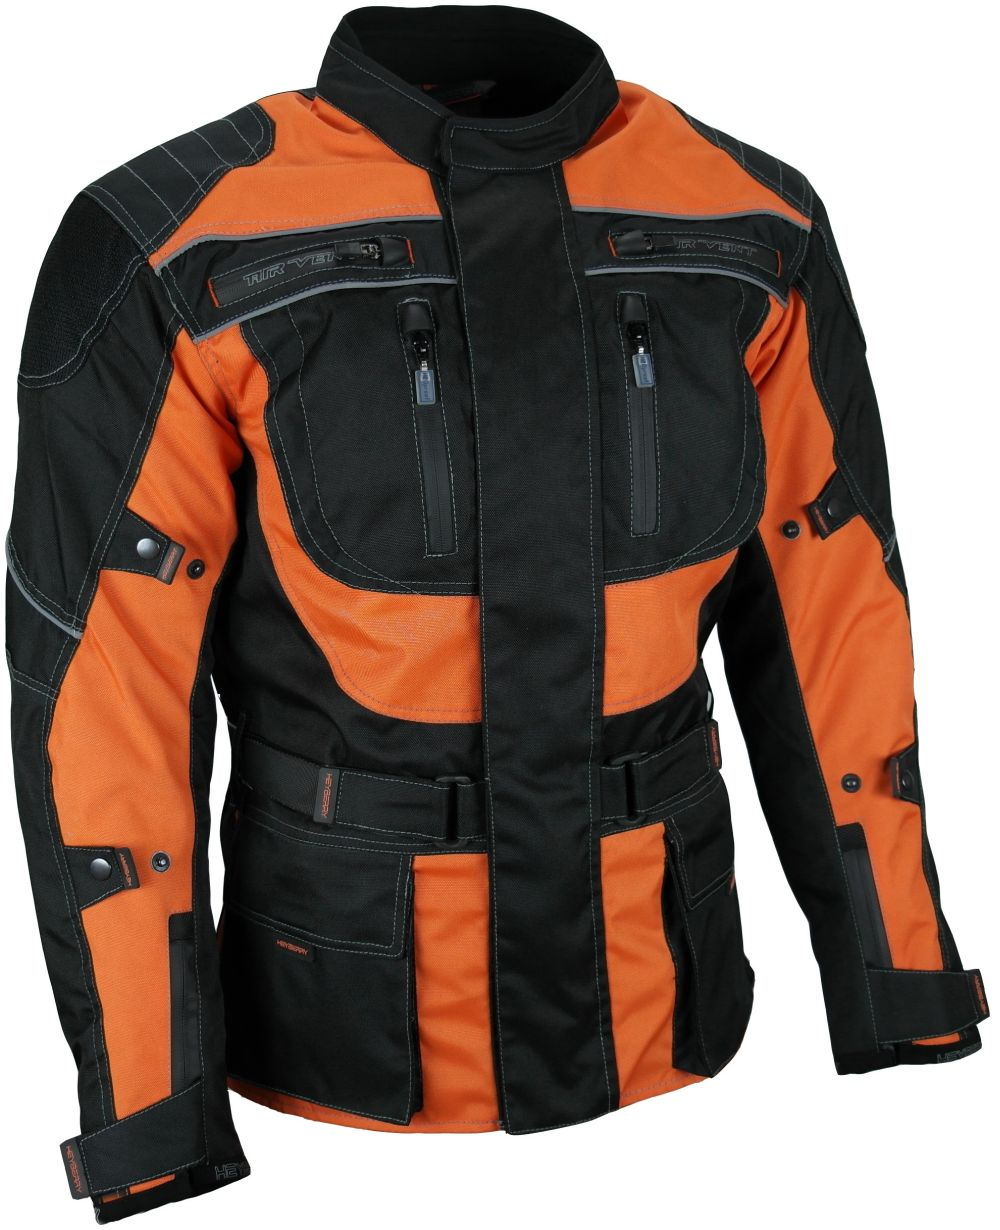 heyberry touren motorrad jacke motorradjacke textil schwarz orange m 3xl. Black Bedroom Furniture Sets. Home Design Ideas